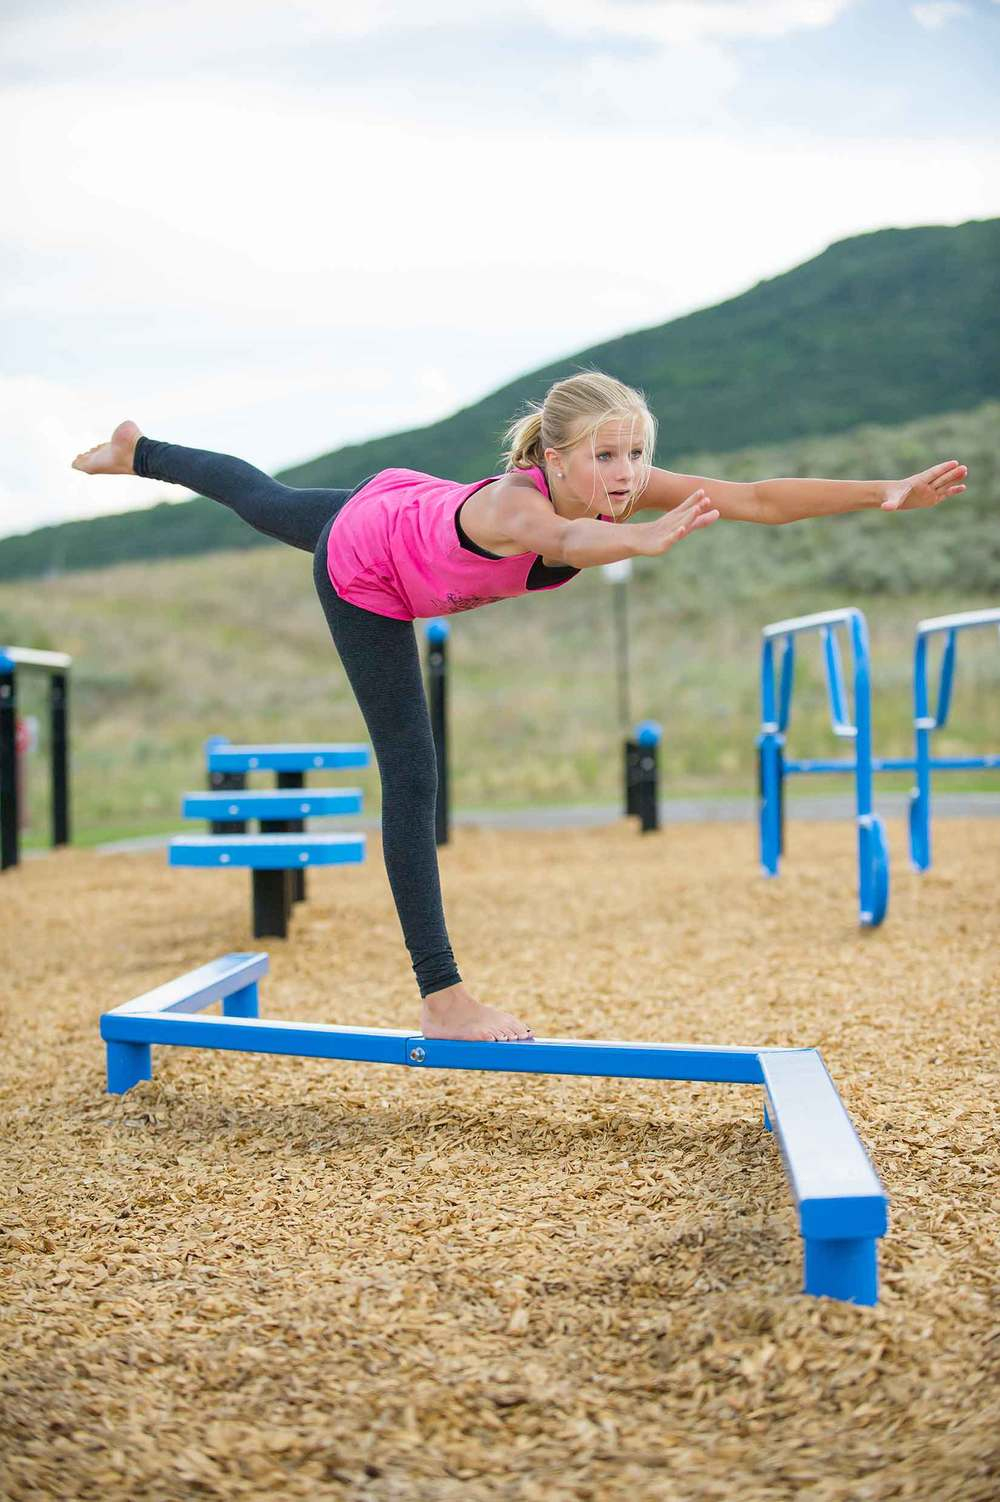 Balance beam outdoor fitness equipment